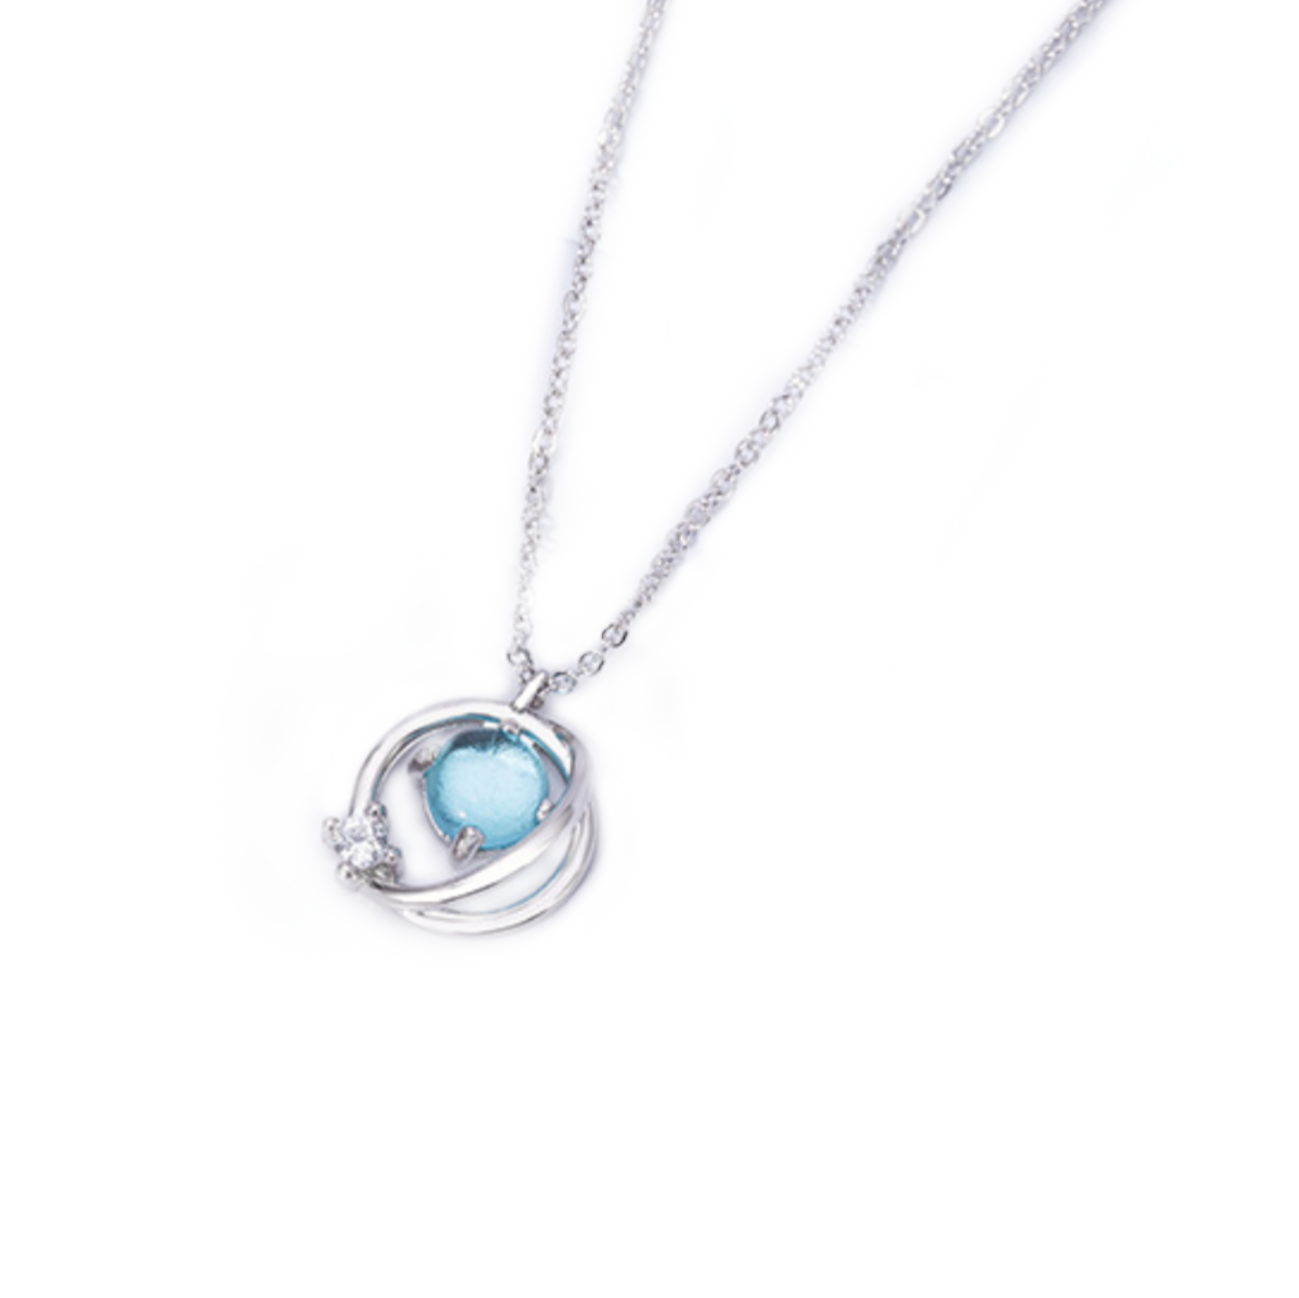 925 Silver Planet Necklace